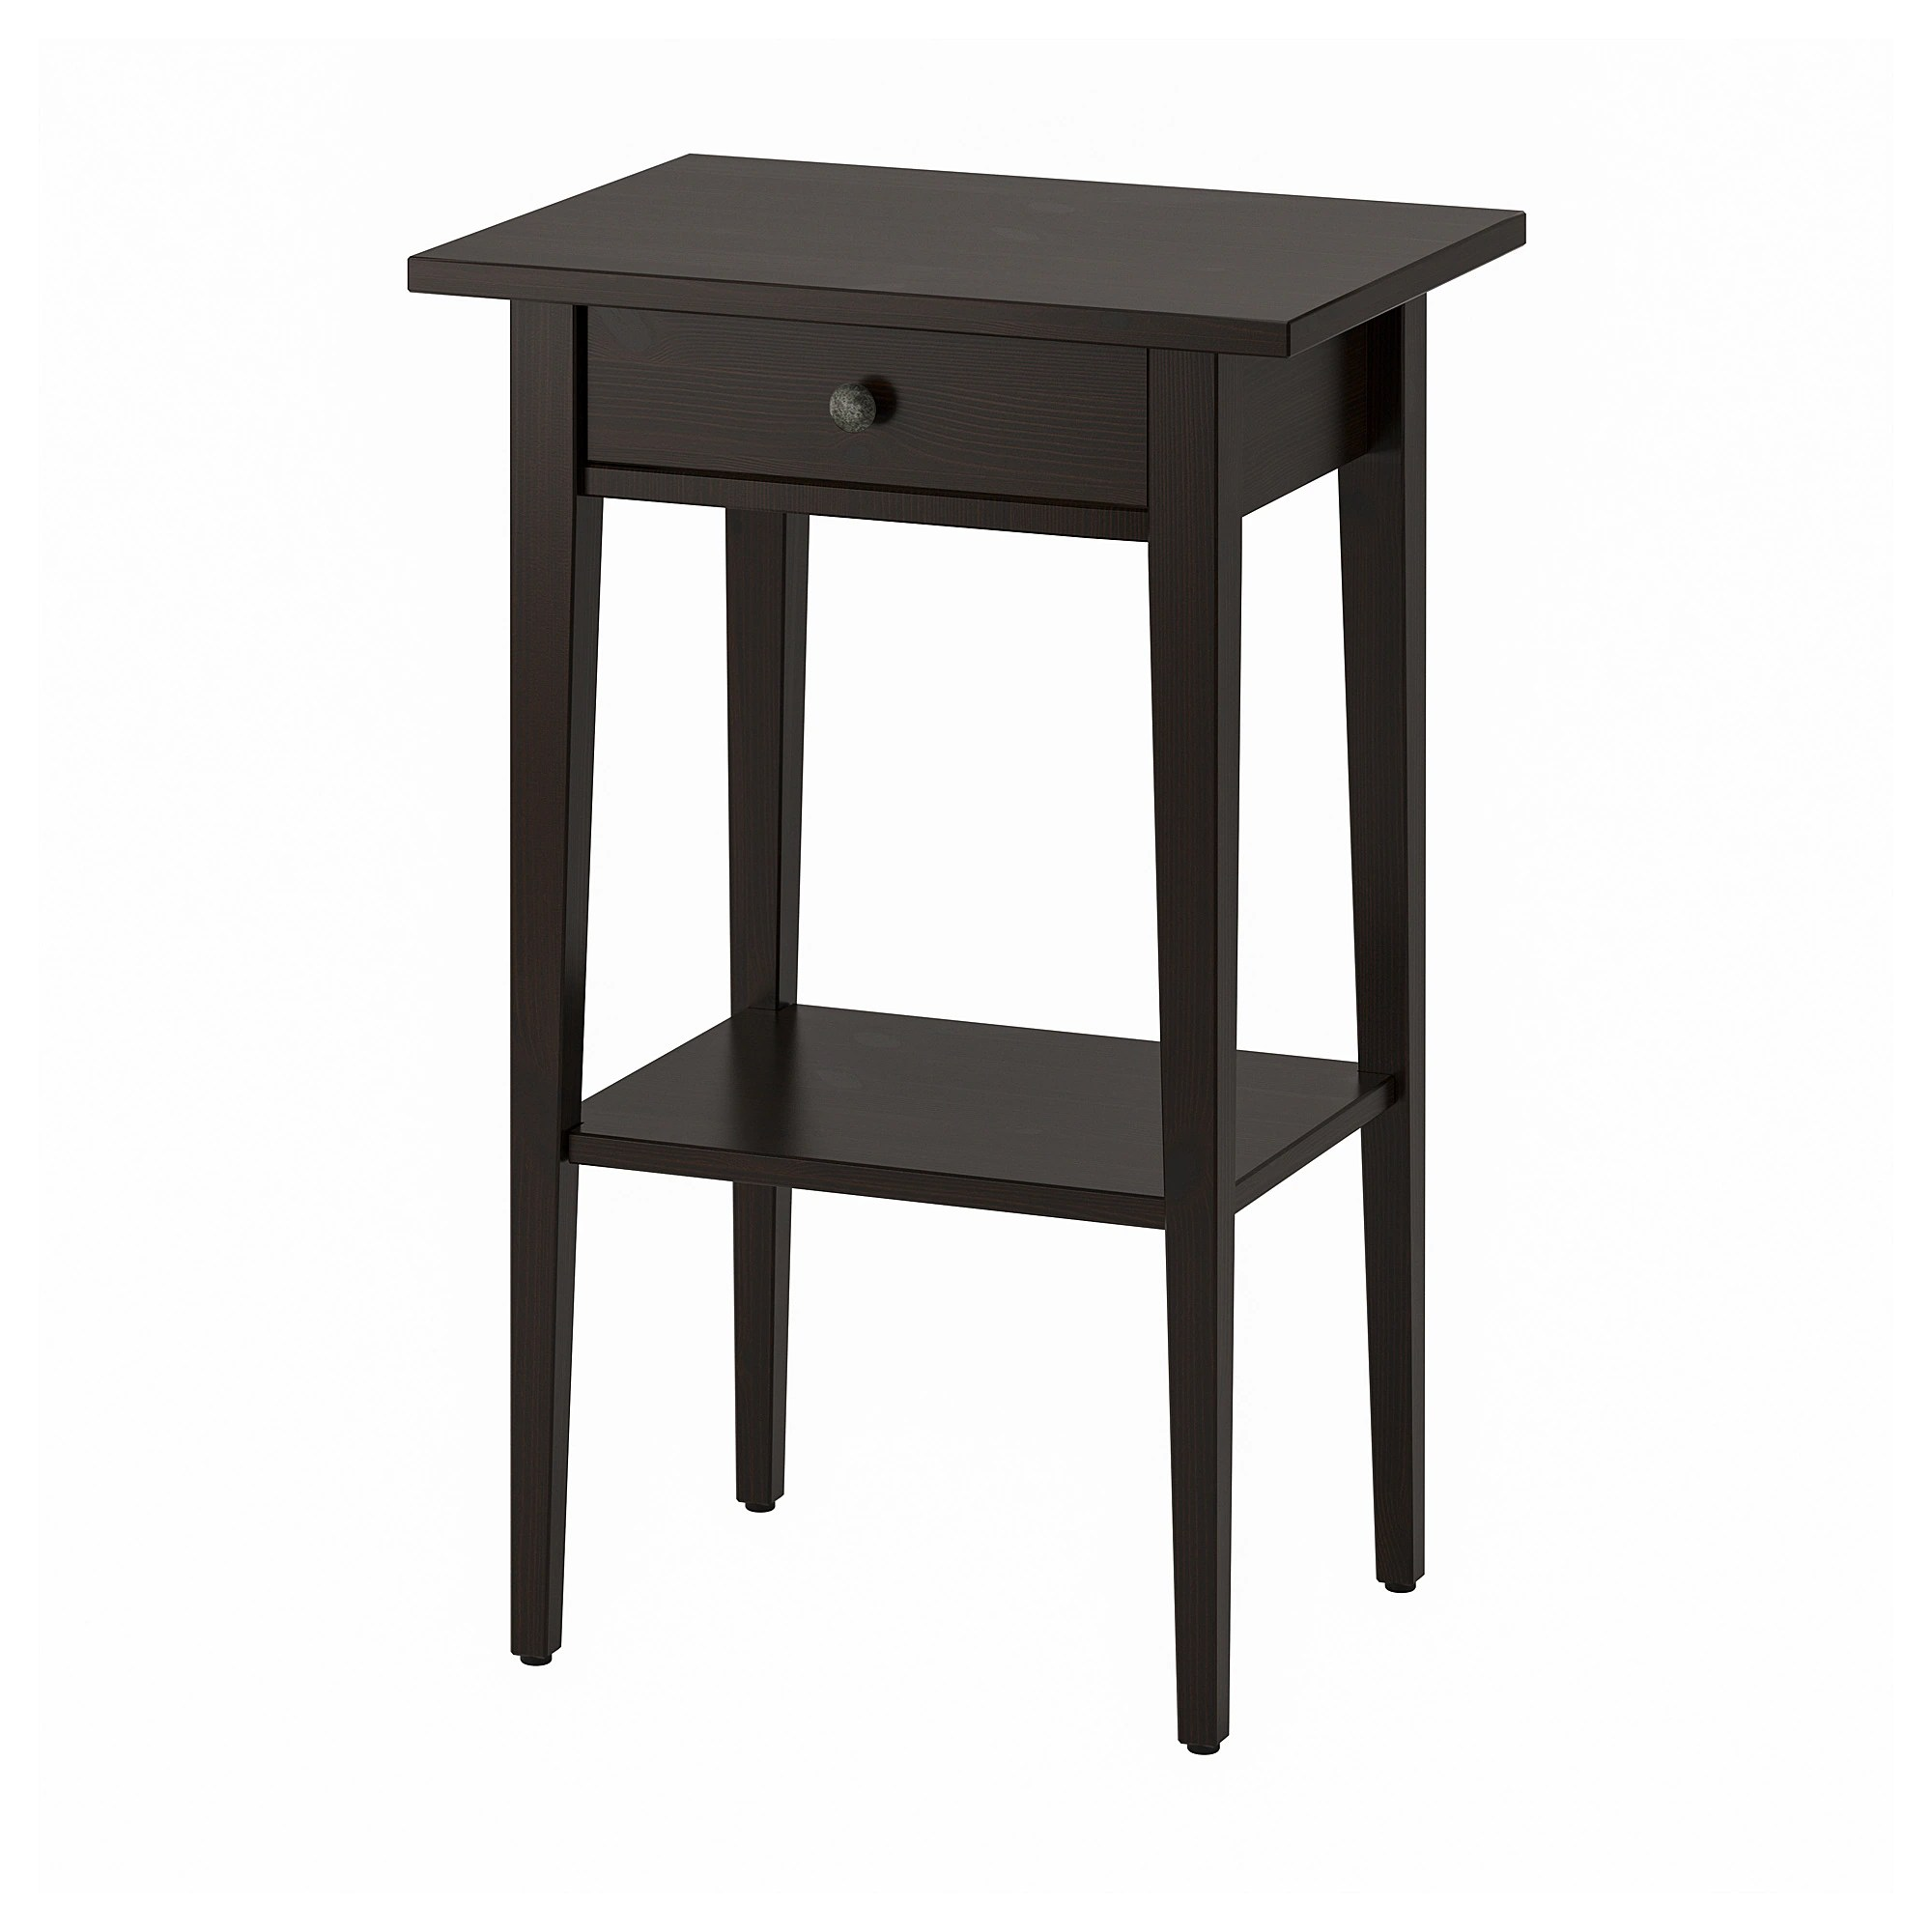 Table De Chevet Noir Ikea Table De Chevet Hemnes Brun Noir